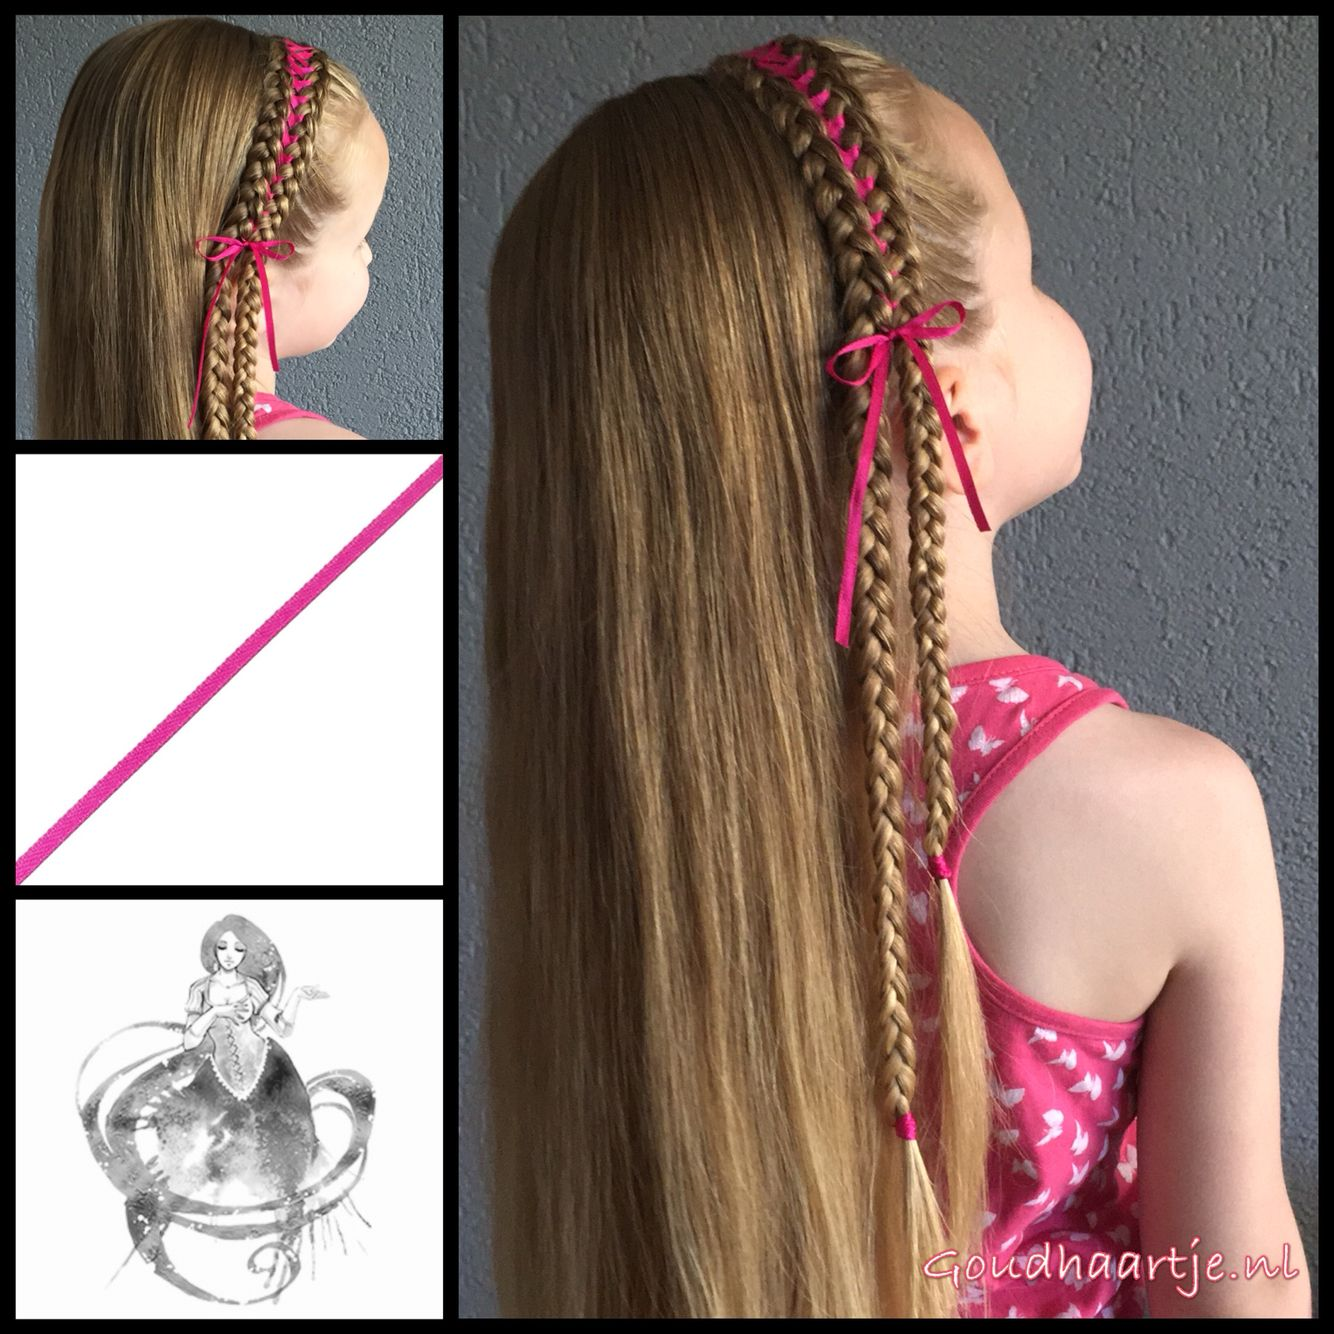 Headband Corset Braid With A Small Ribbon From The Webshop Www Goudhaartje Nl Hair Styles Headband Hairstyles Braided Hairstyles